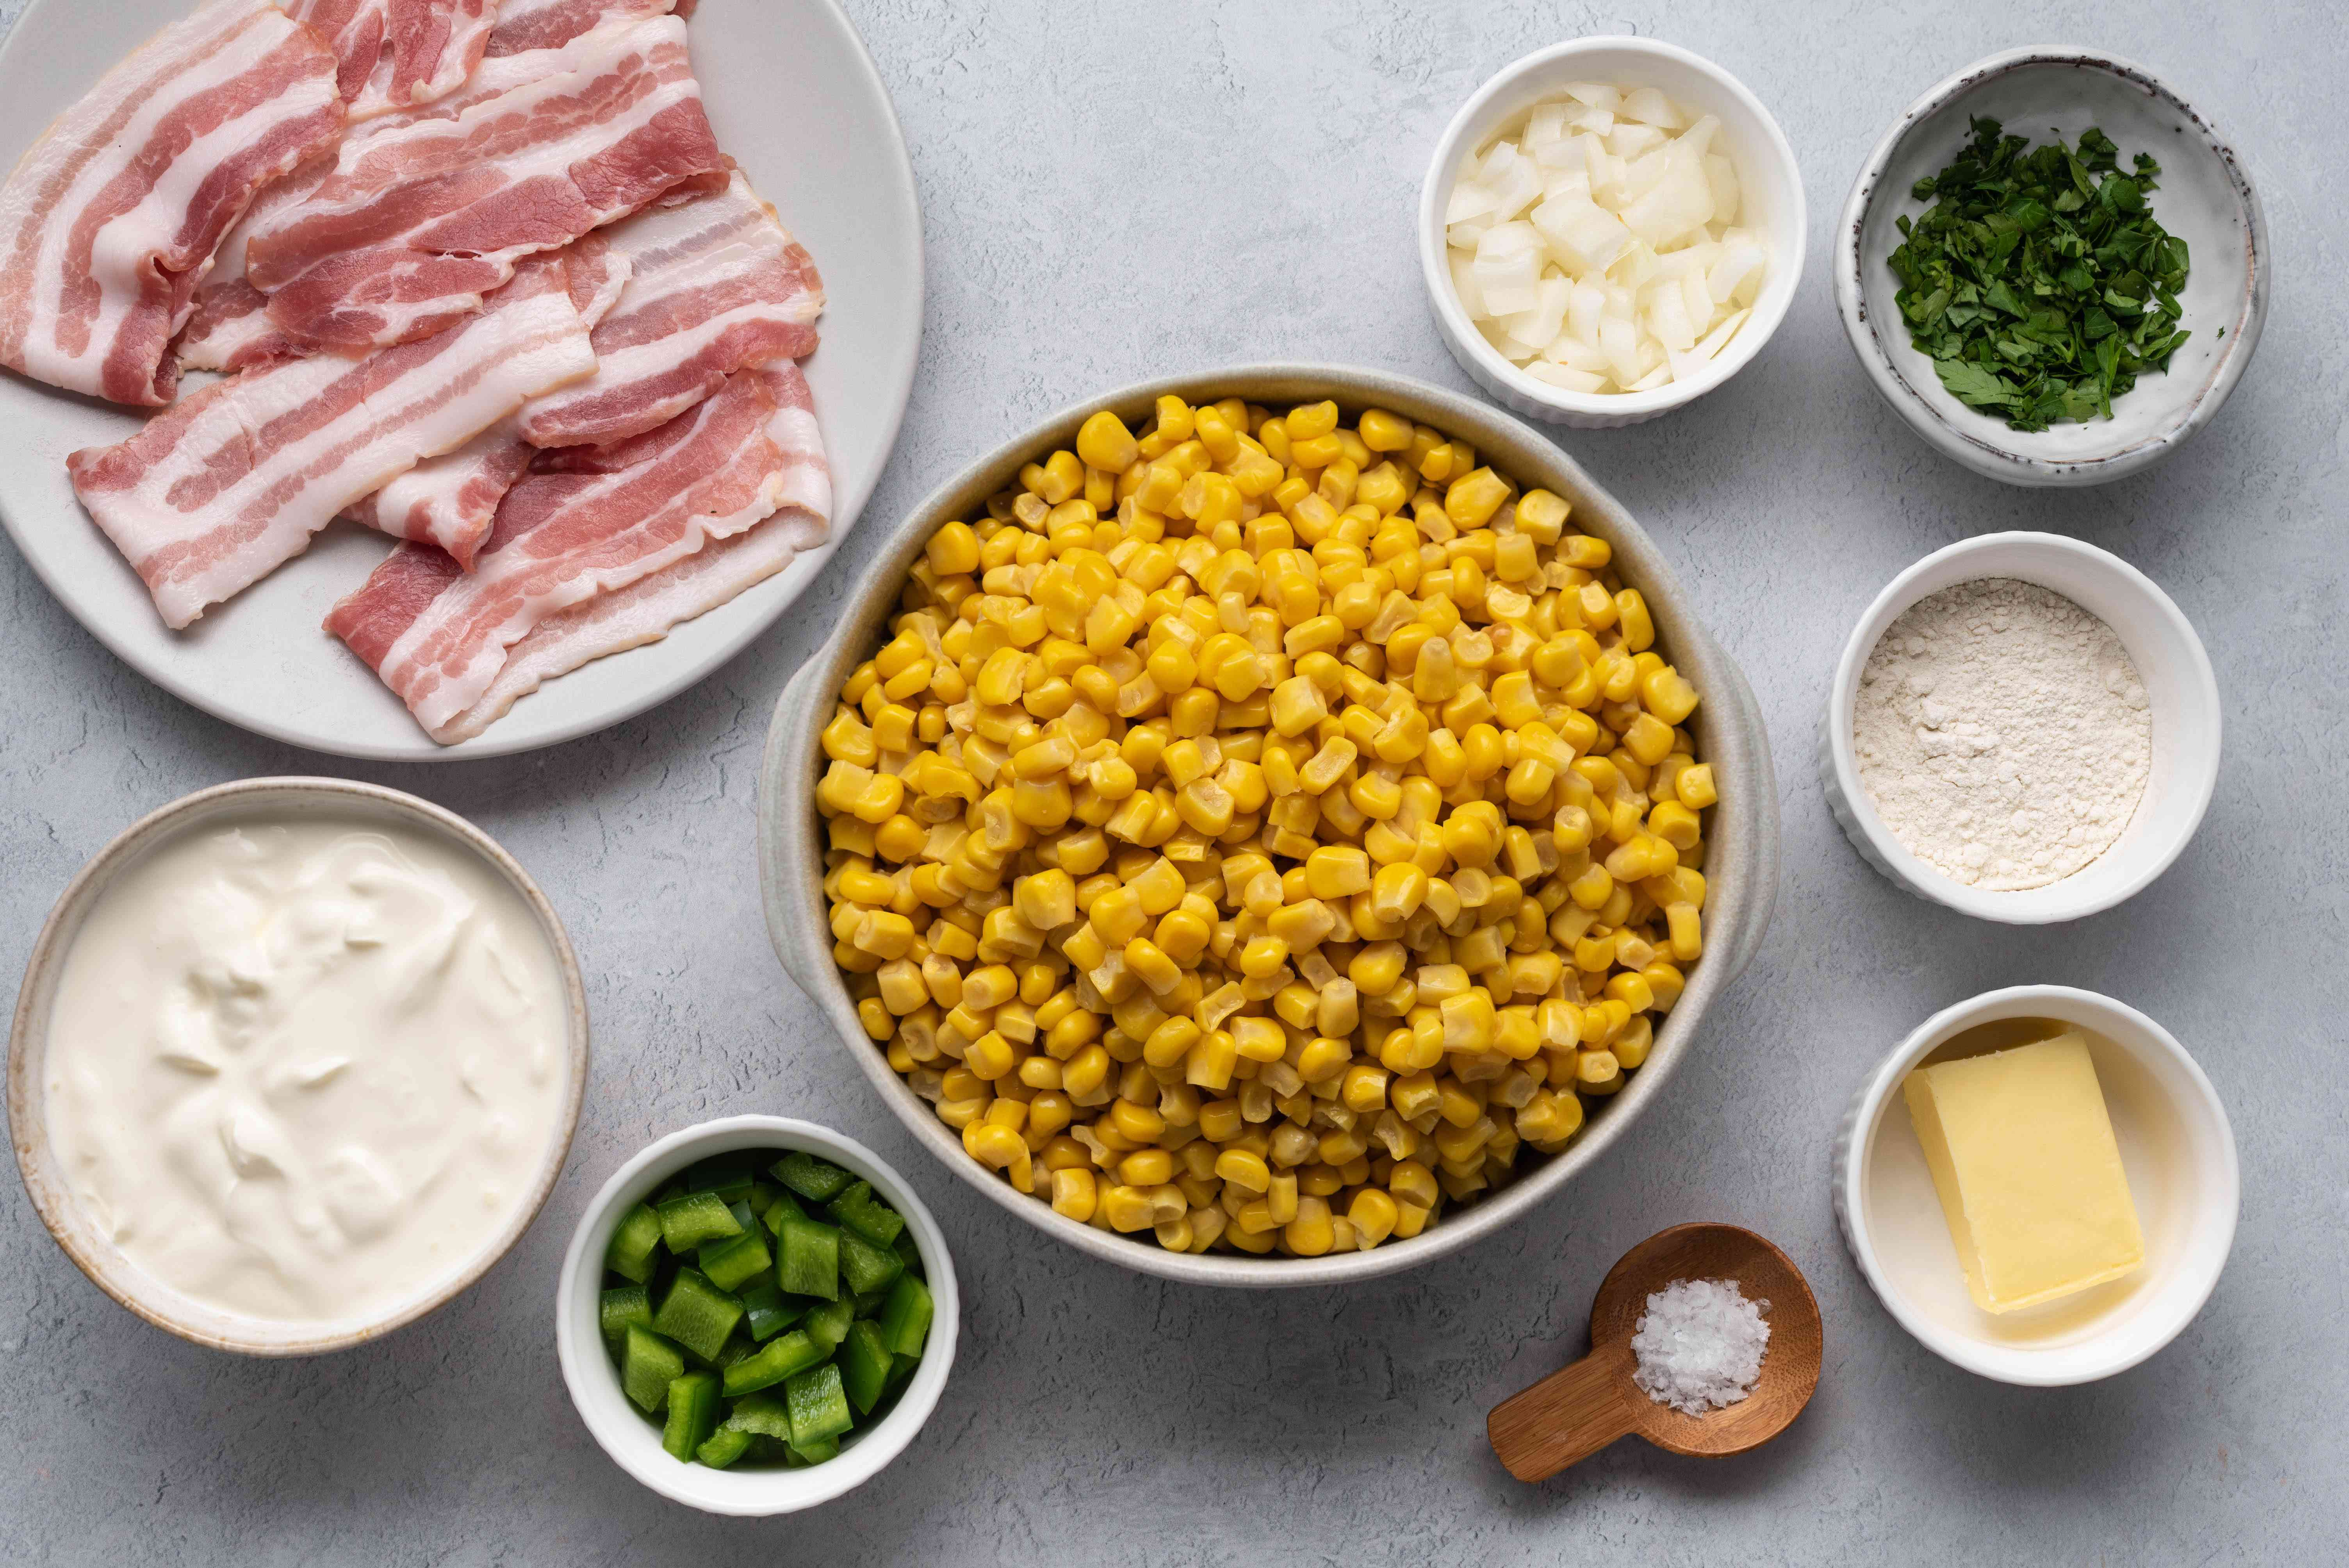 Skillet Corn With Bacon and Sour Cream ingredients